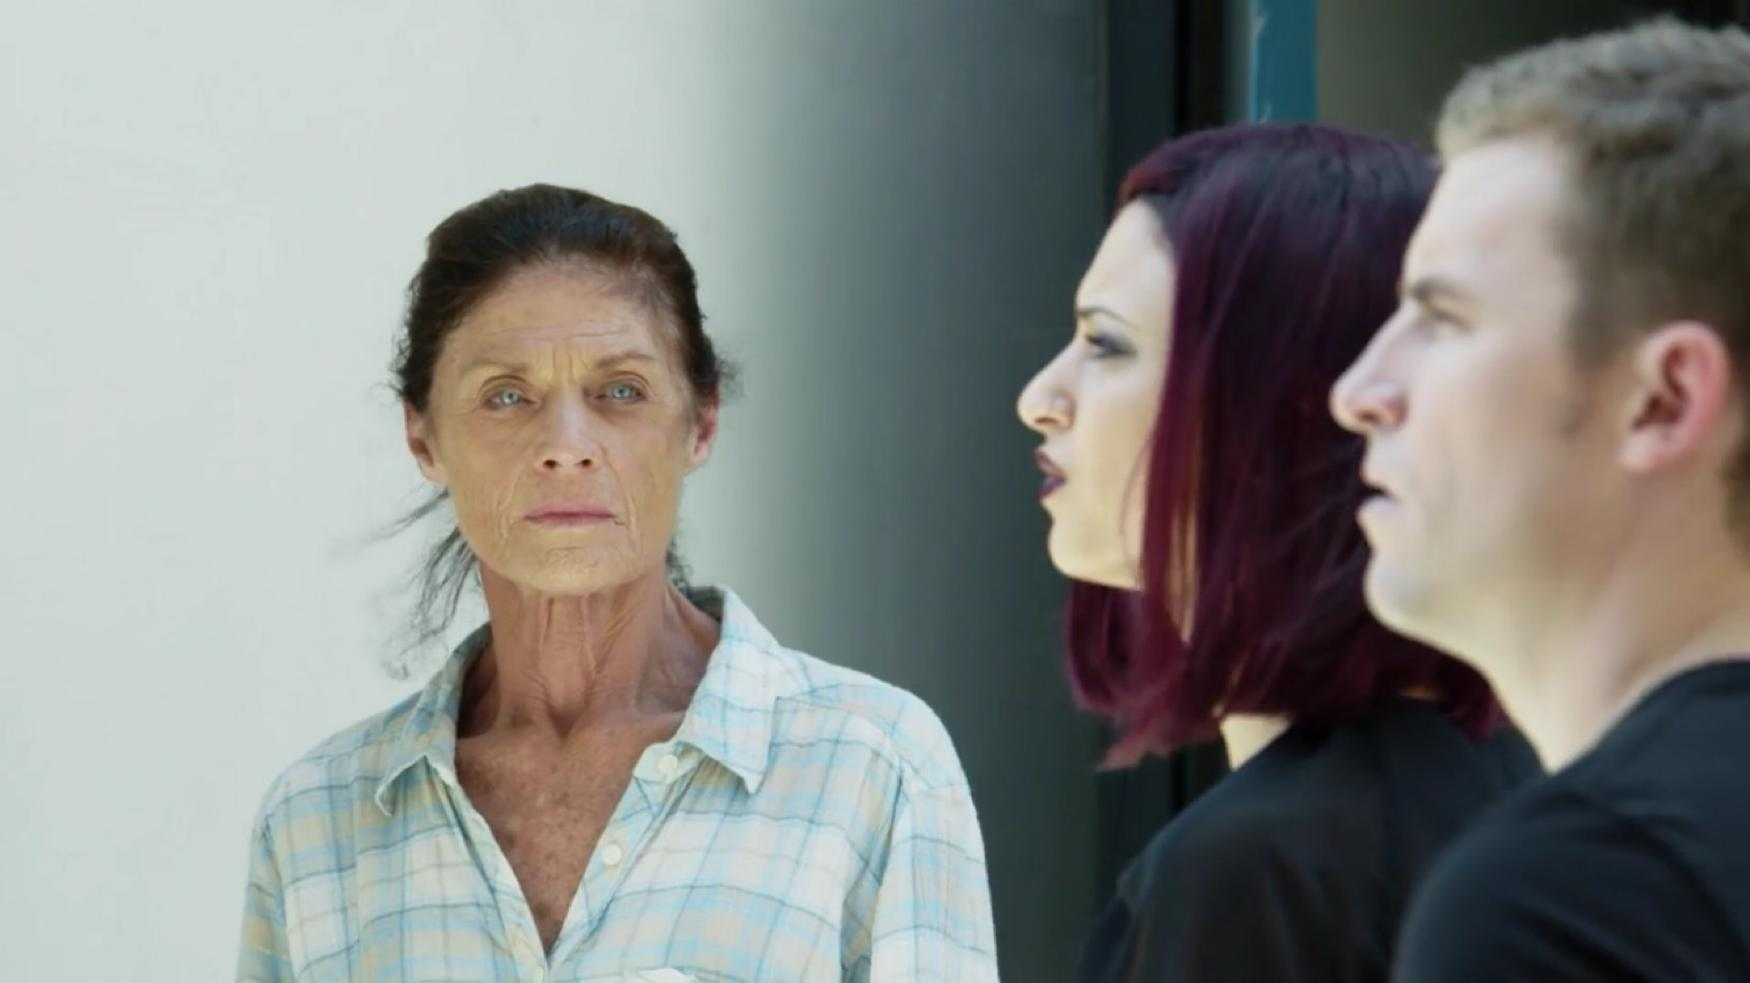 Meg Foster, Patrick Flanagan, and Stephanie Hernandez in 'Investigation 13'